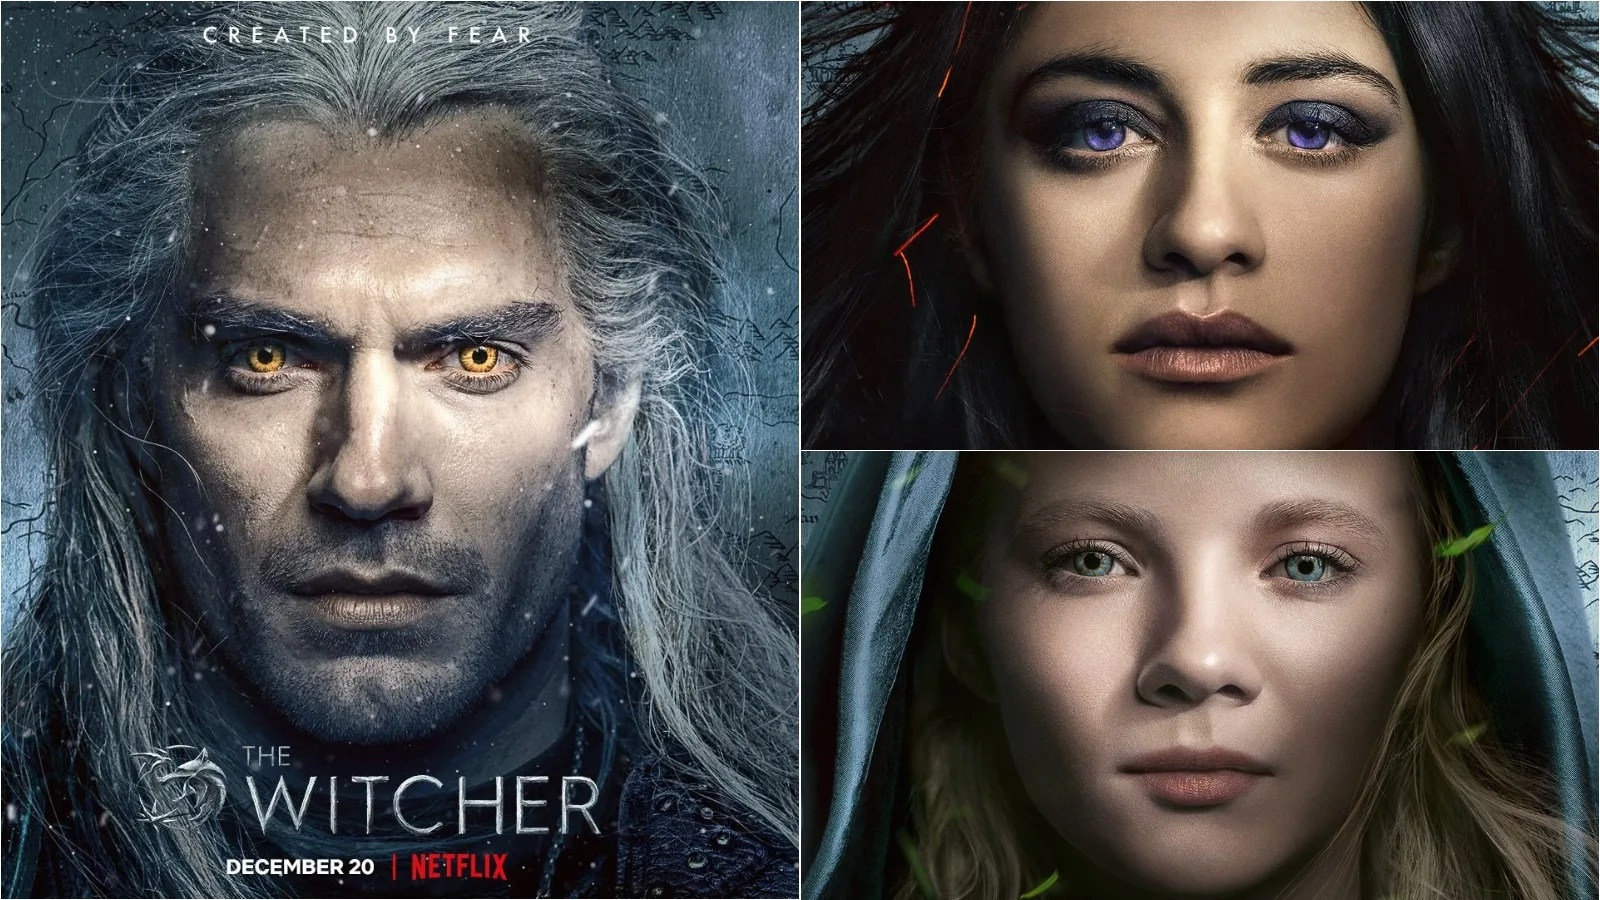 The Witcher Season 2 Release Date, Trailer, Cast and Plot Details